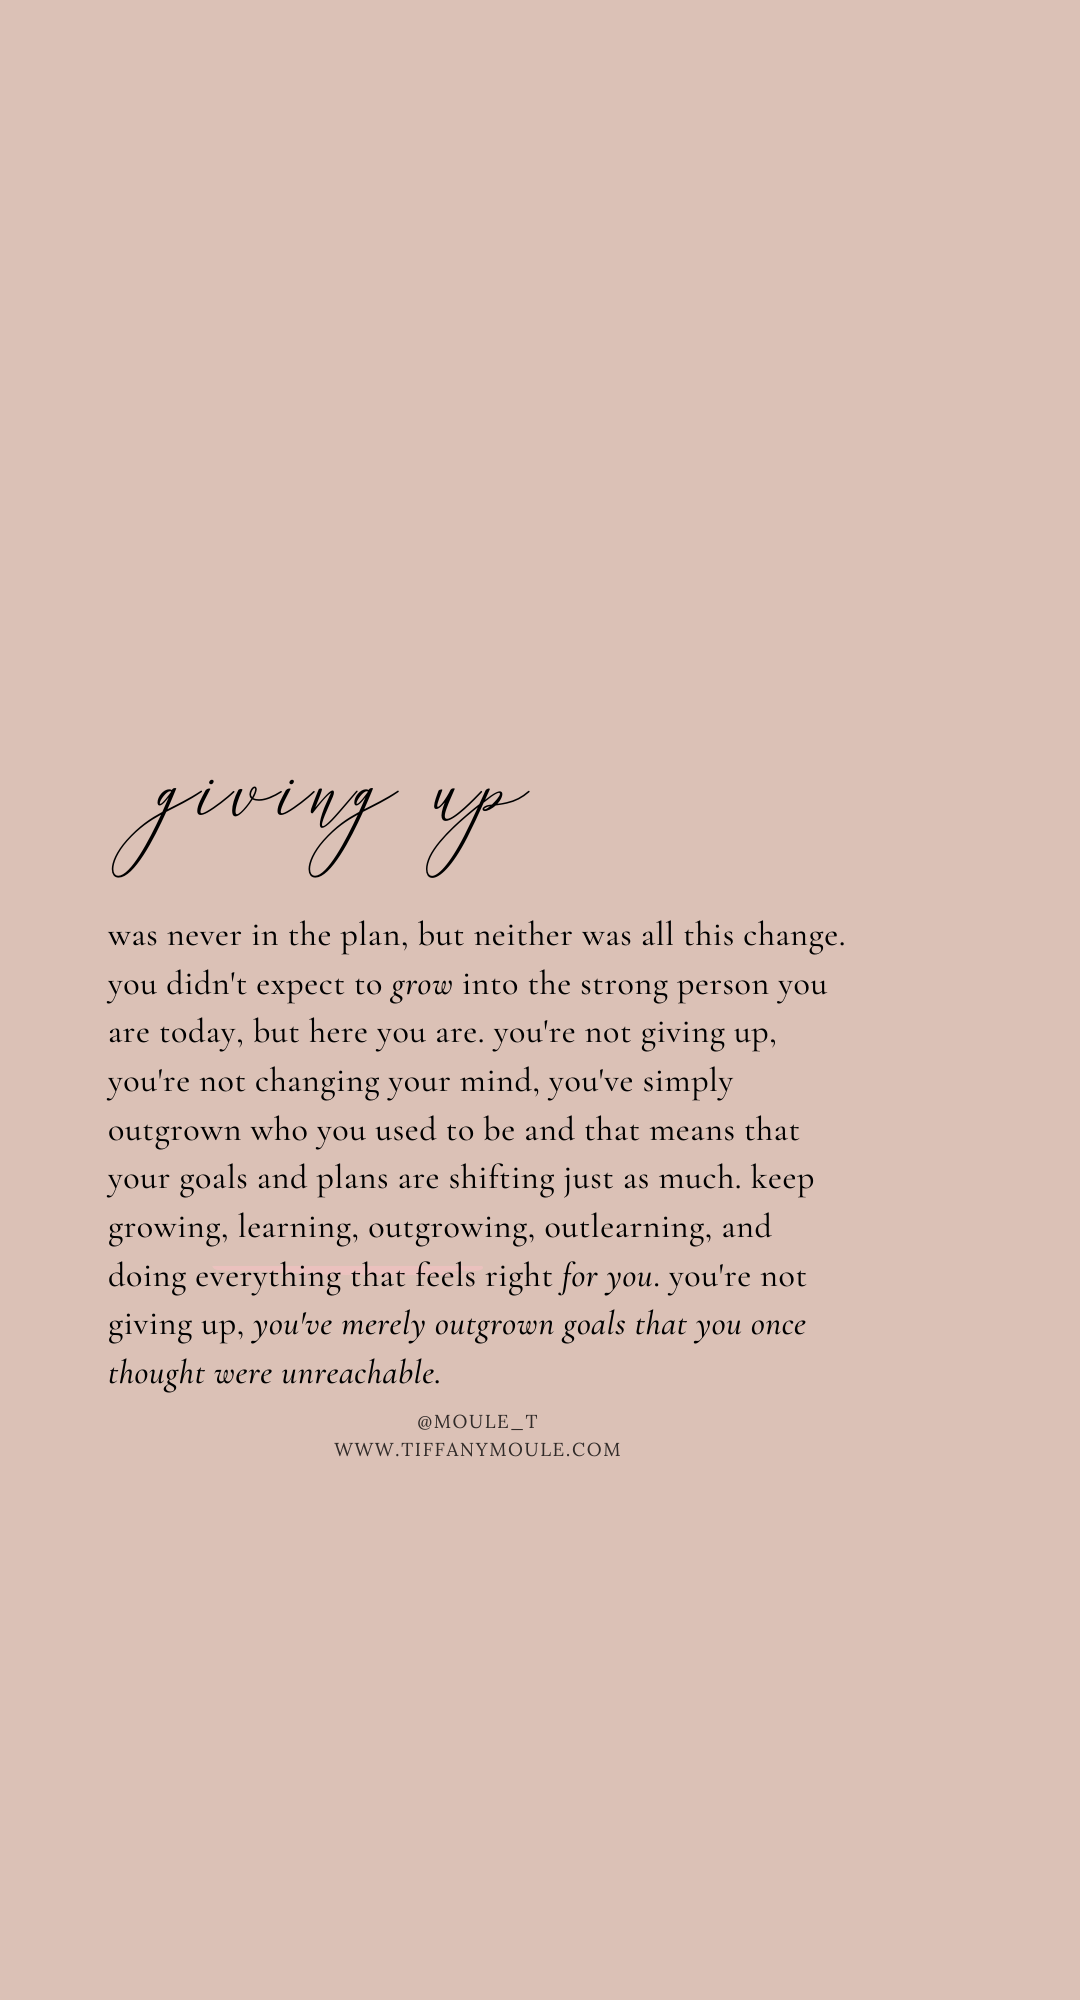 You're not giving up - You're growing up #quote #quoteoftheday #growth #goals